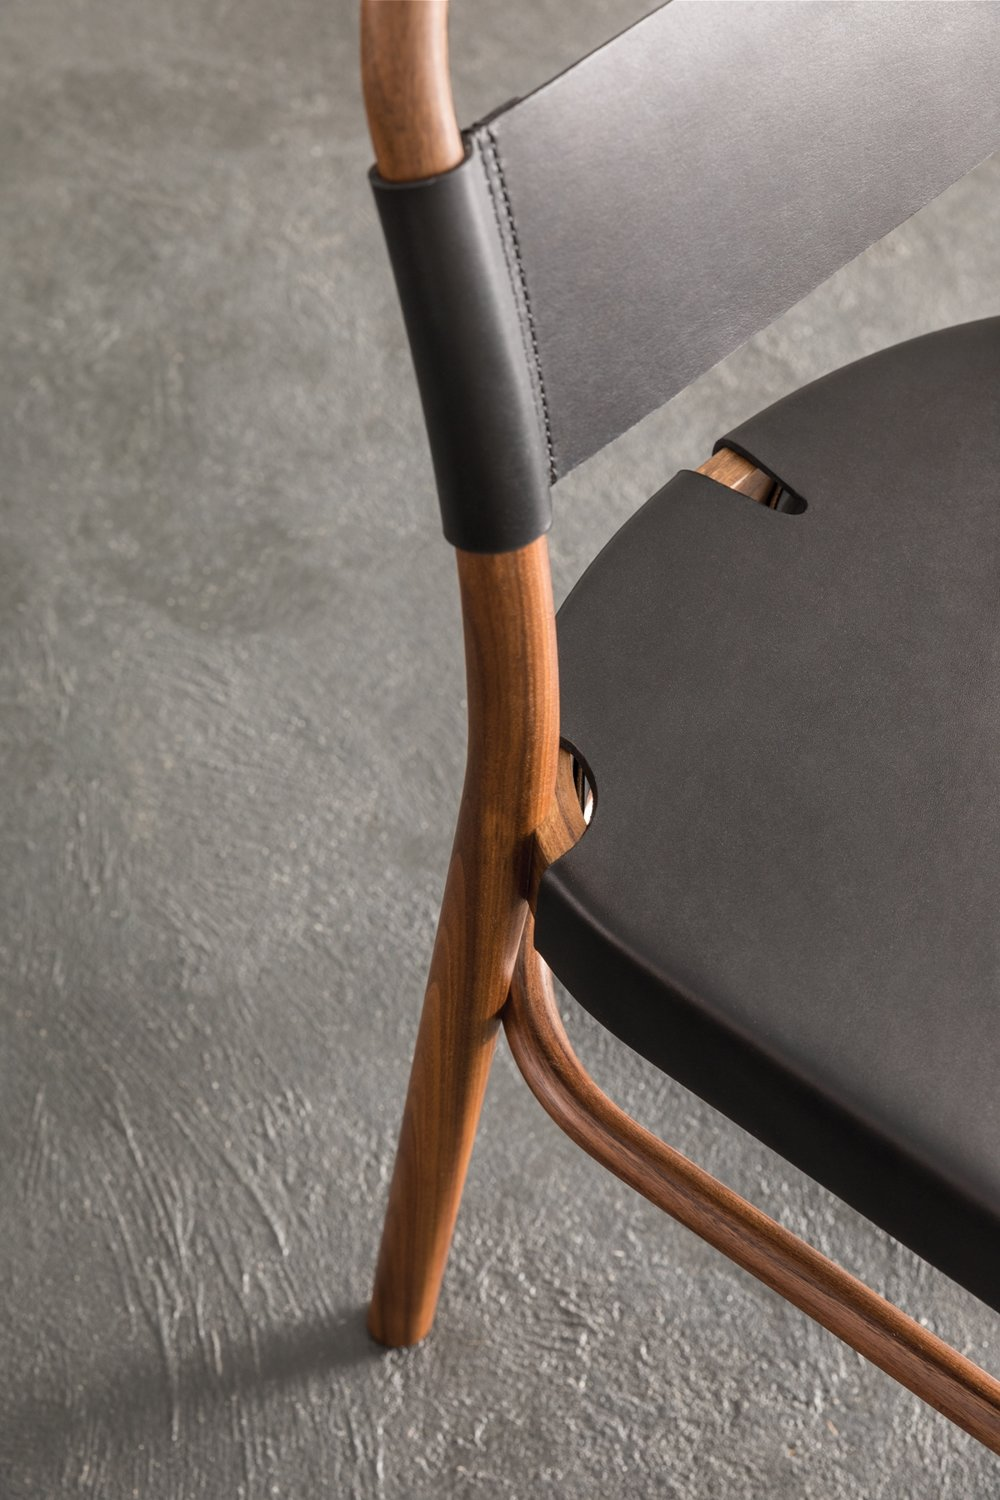 > Detail of hand-stitched leather backrest and steam-bent parts.